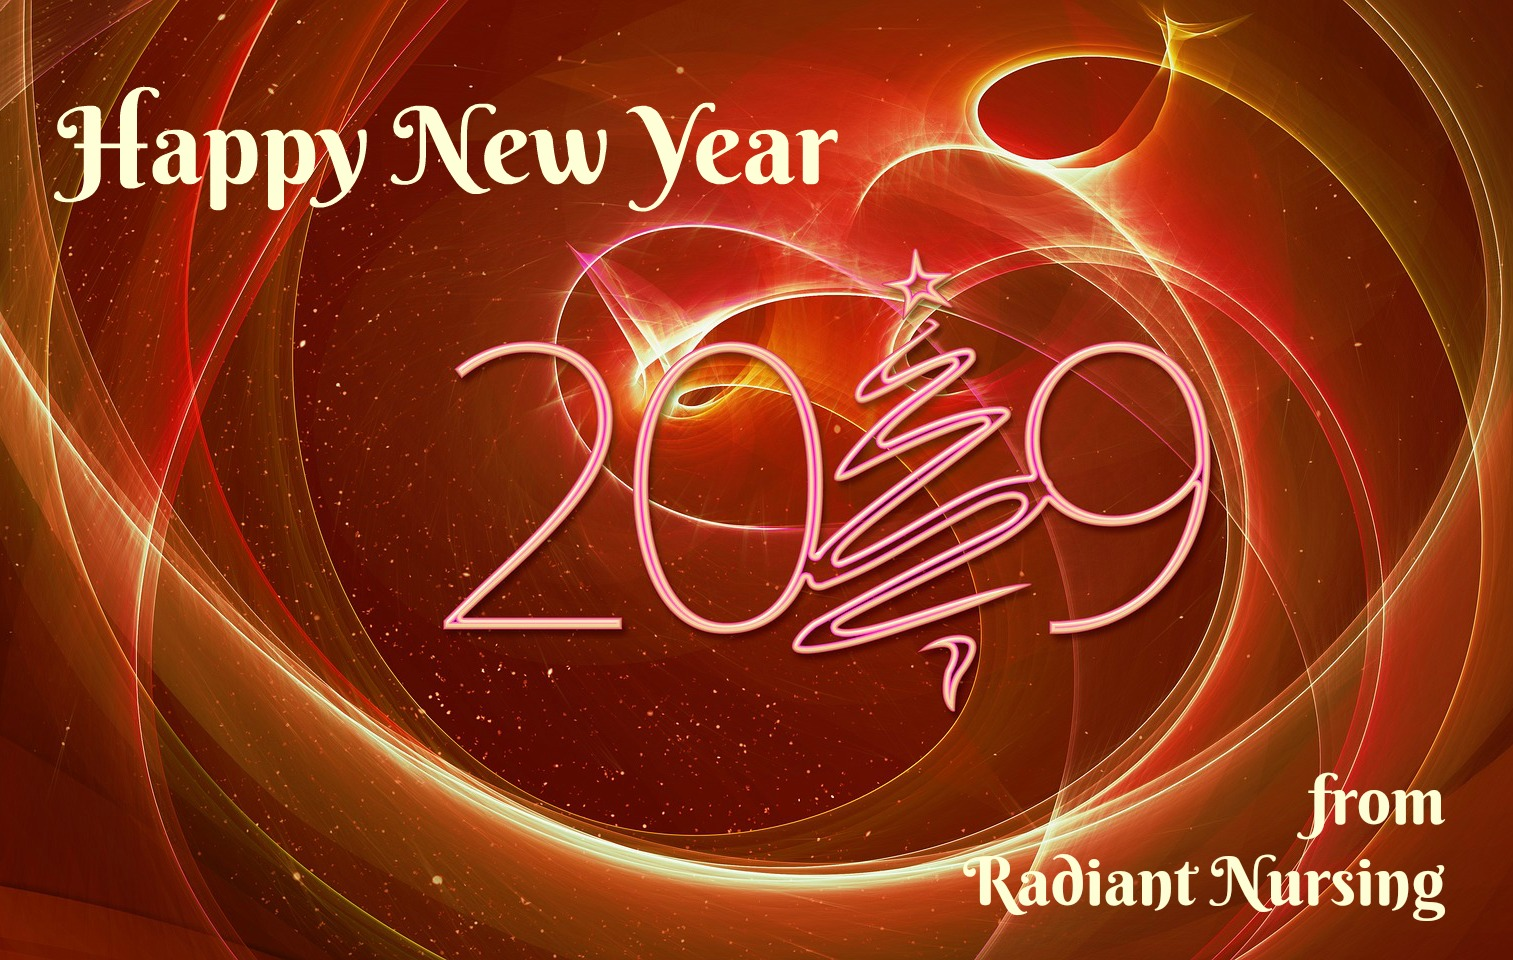 Welcome to New Year 2019 from Radiant Nursing.